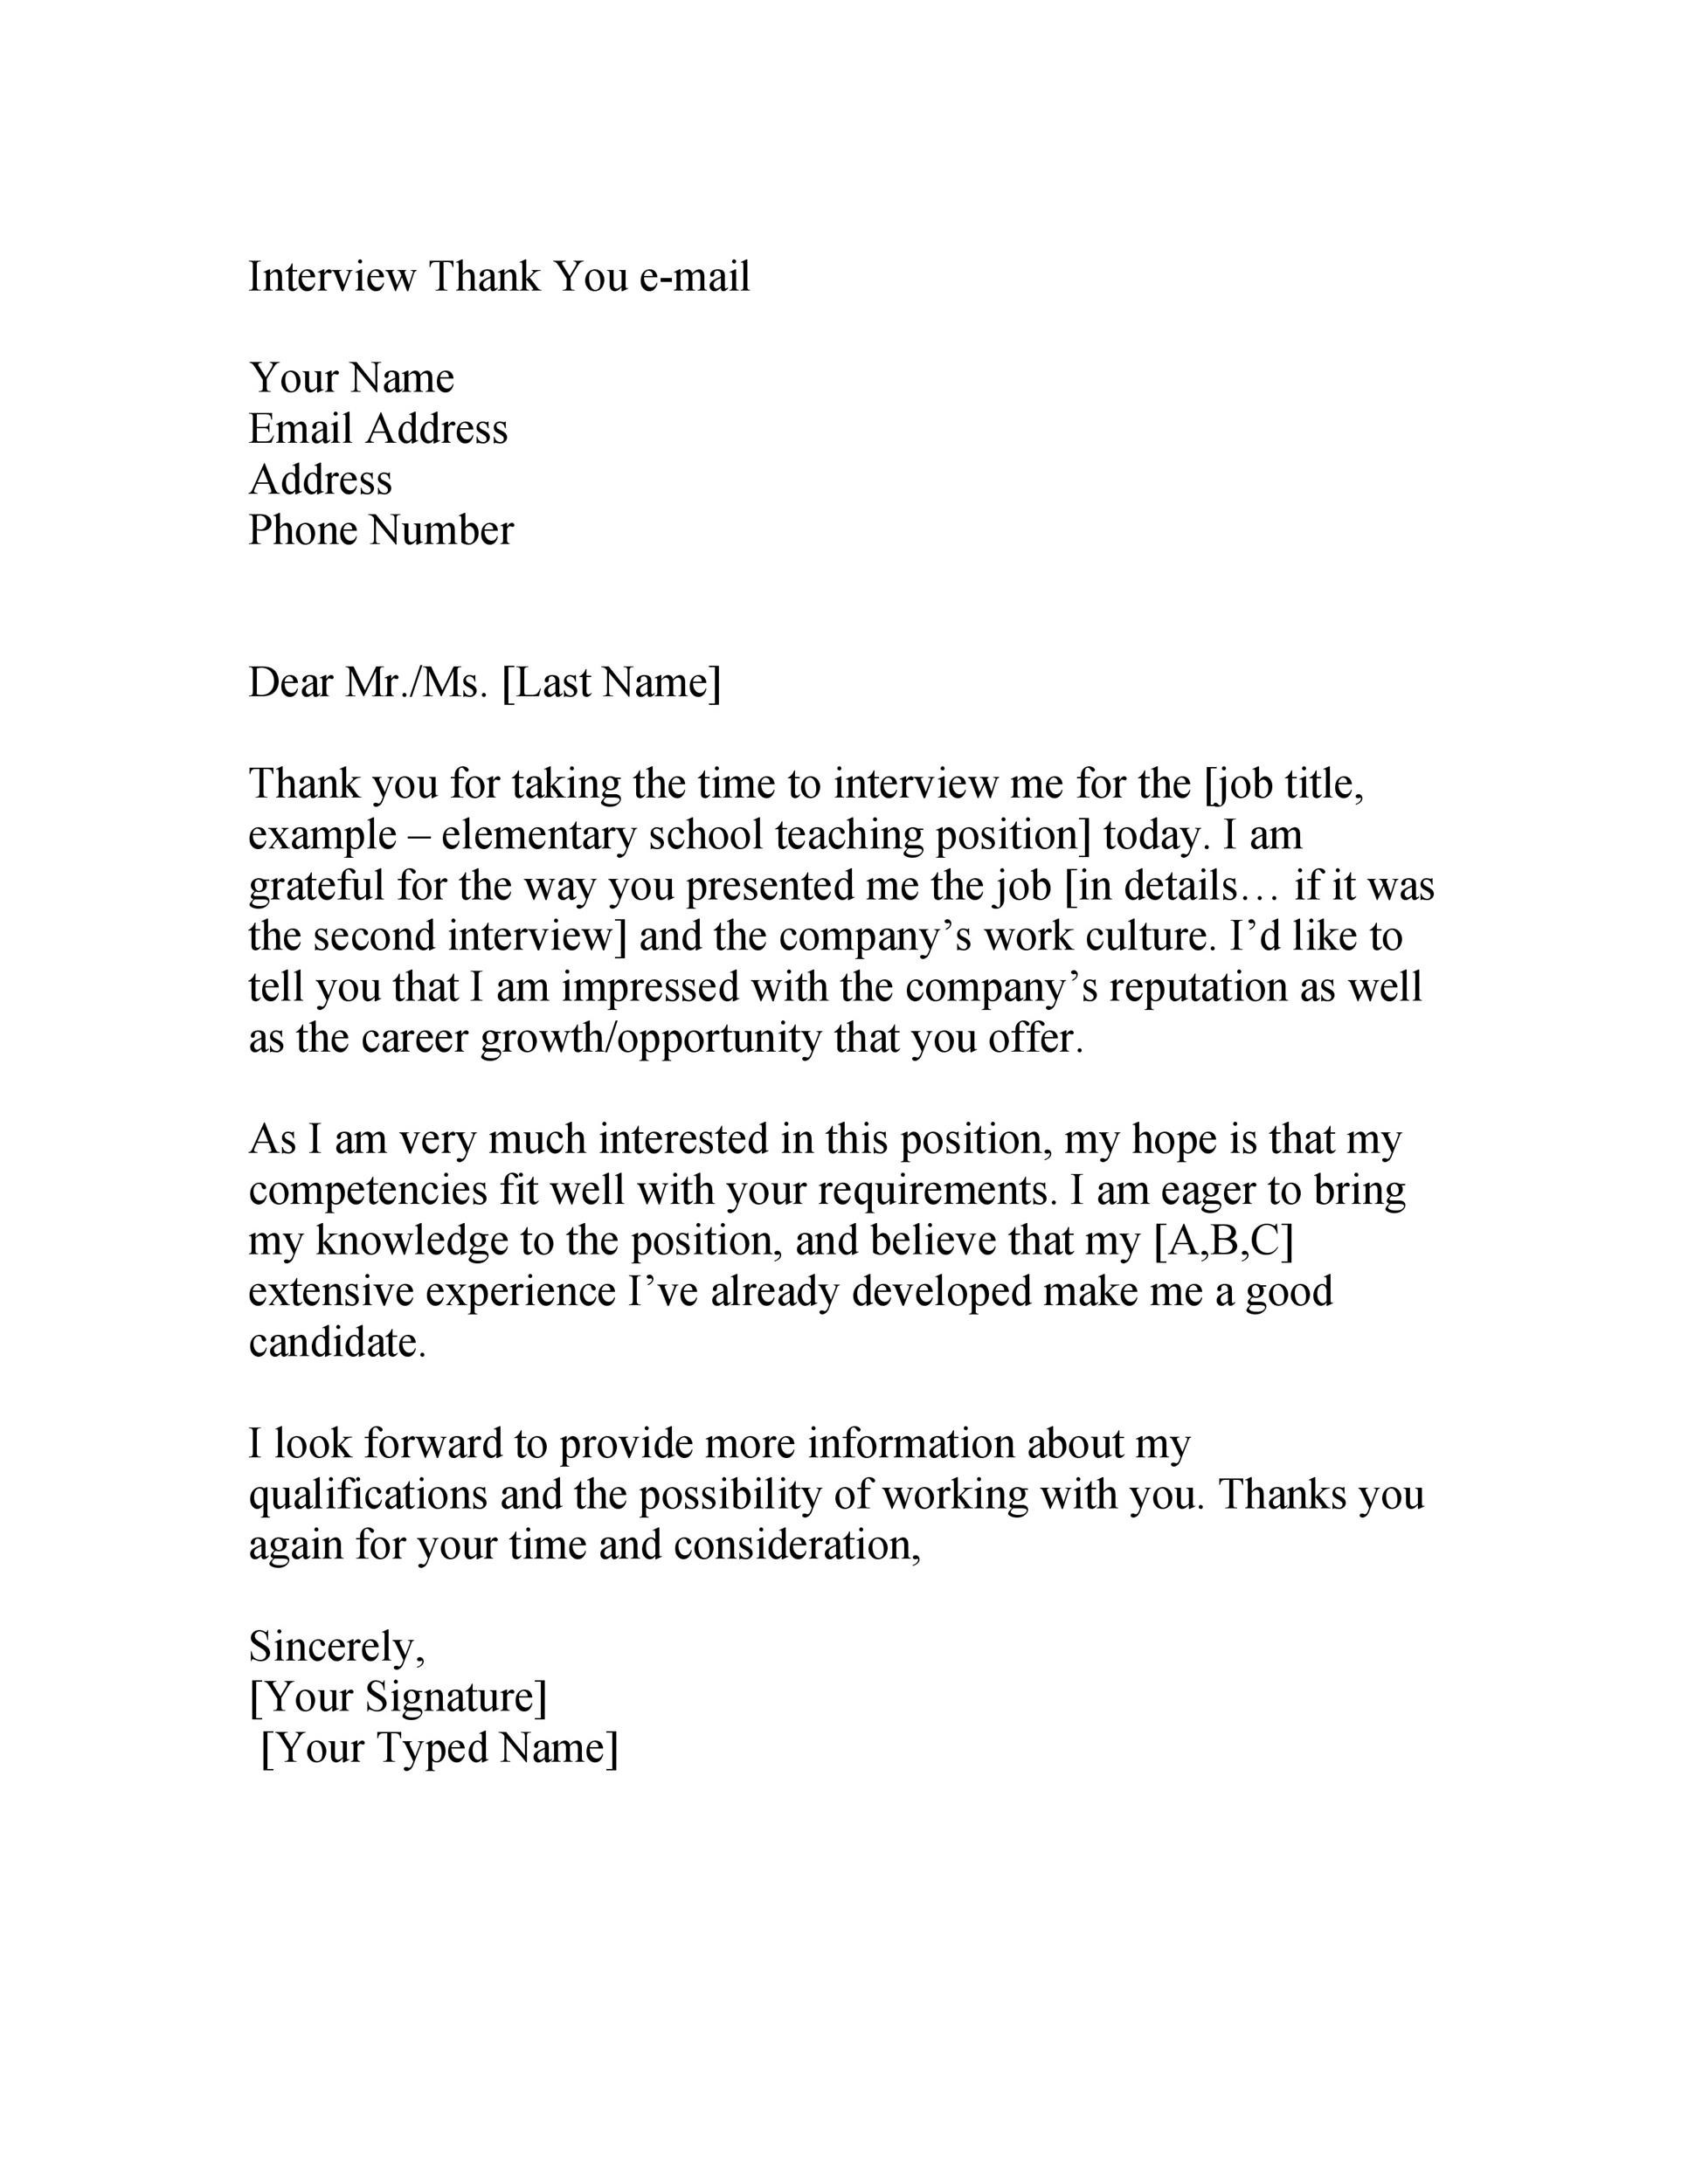 Thank You Email After Job Offer  Template